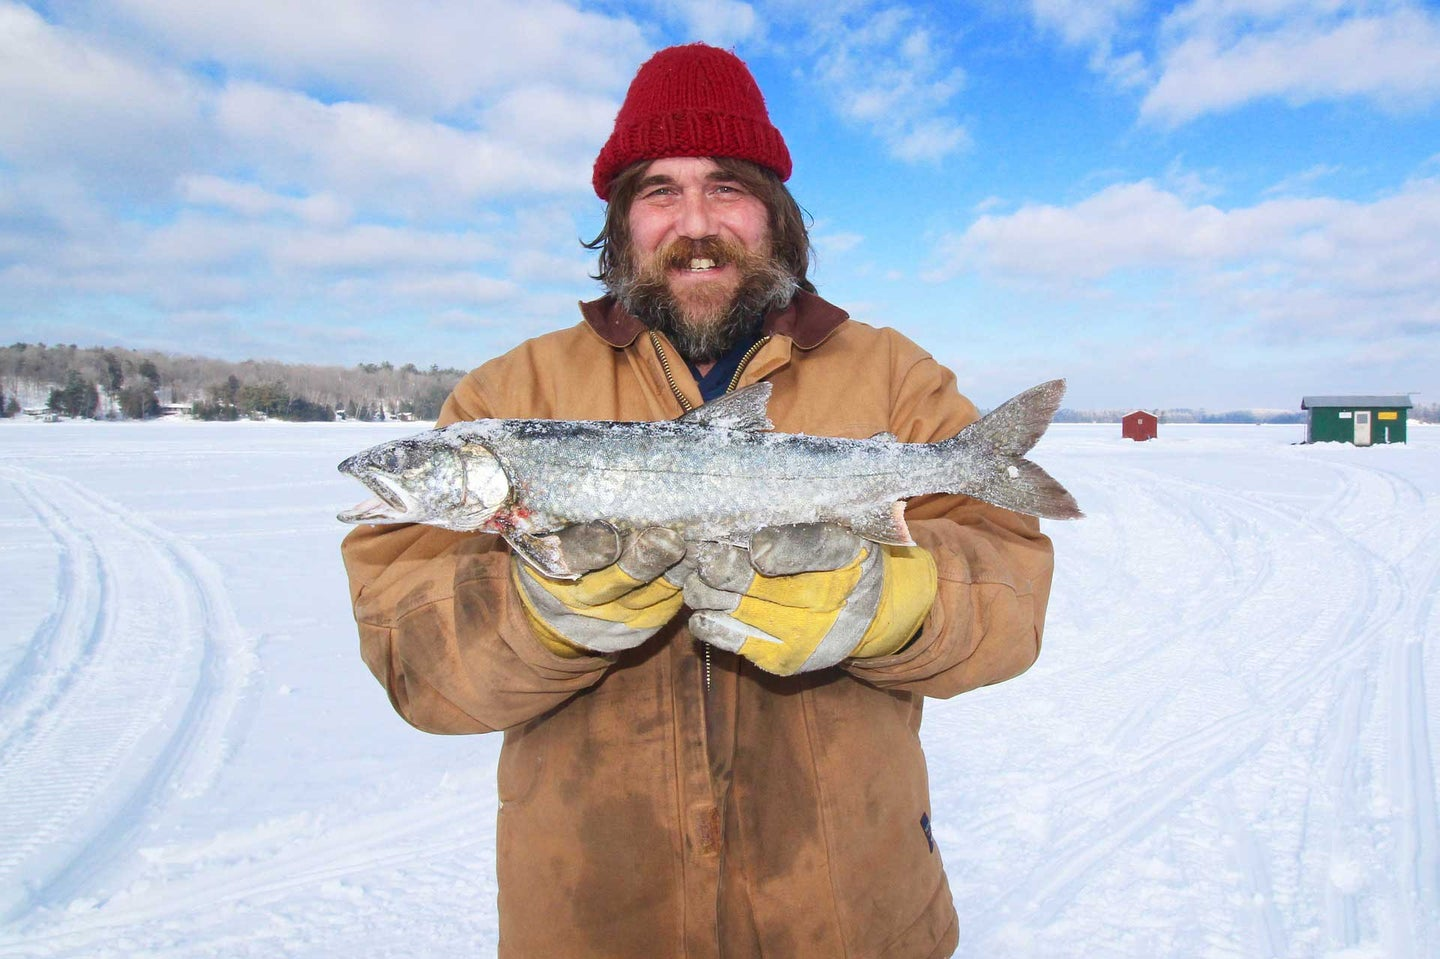 Guy holding a fish on the ice